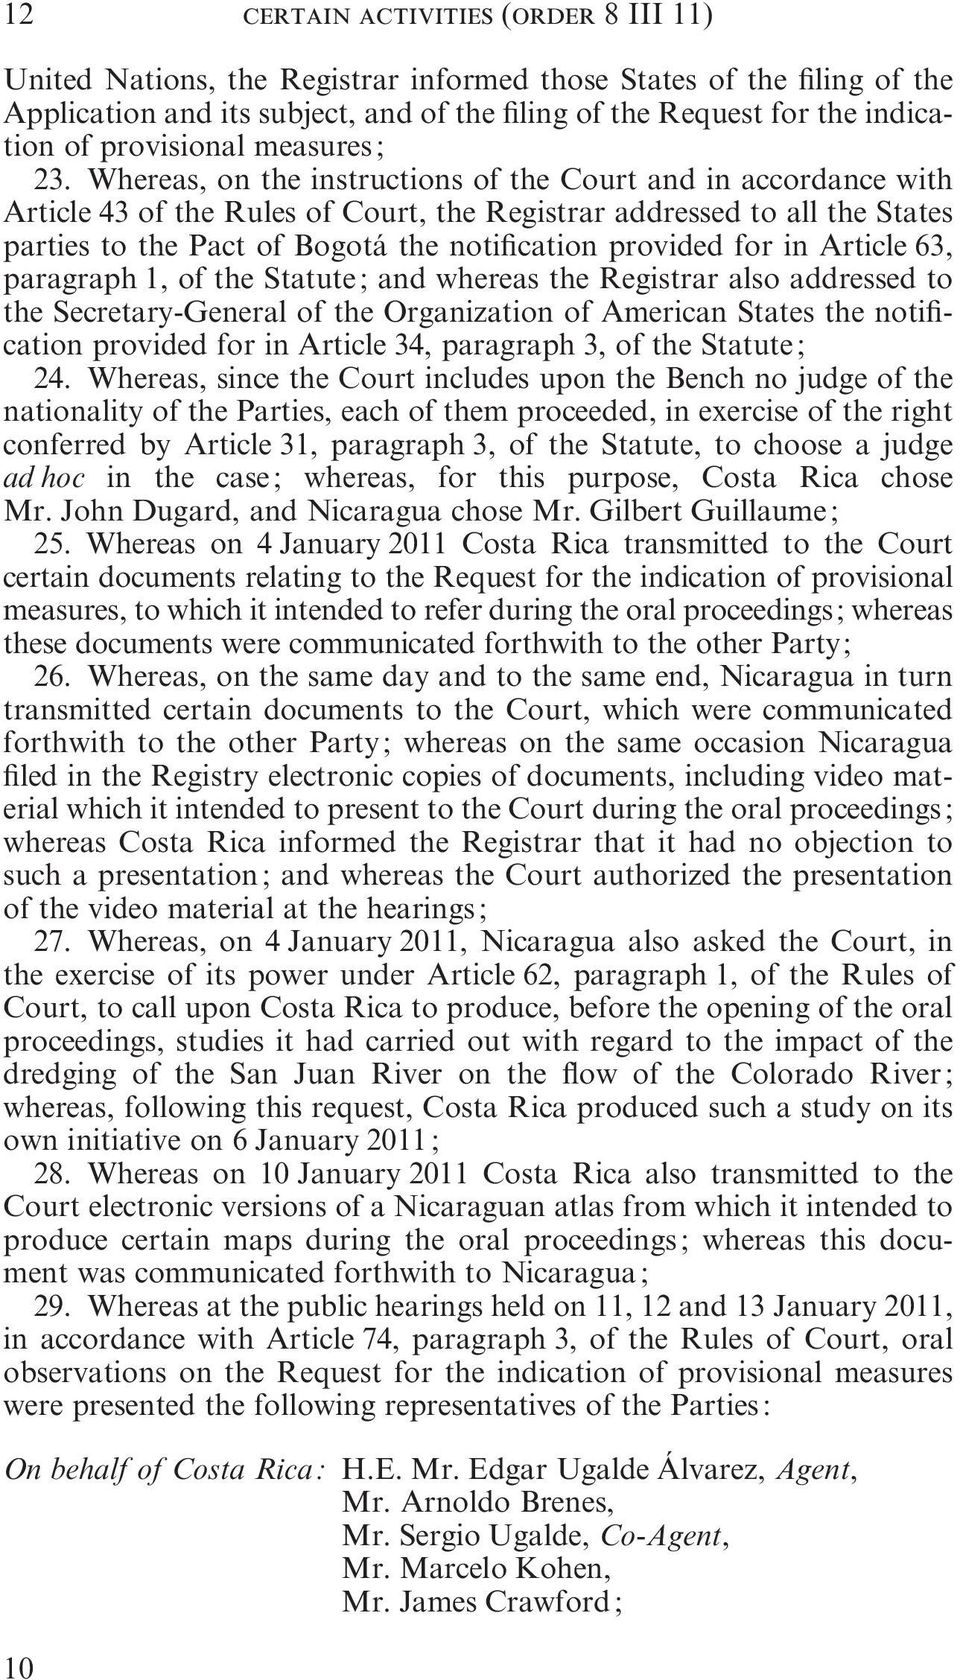 Whereas, on the instructions of the Court and in accordance with Article 43 of the Rules of Court, the Registrar addressed to all the States parties to the Pact of Bogotá the notification provided